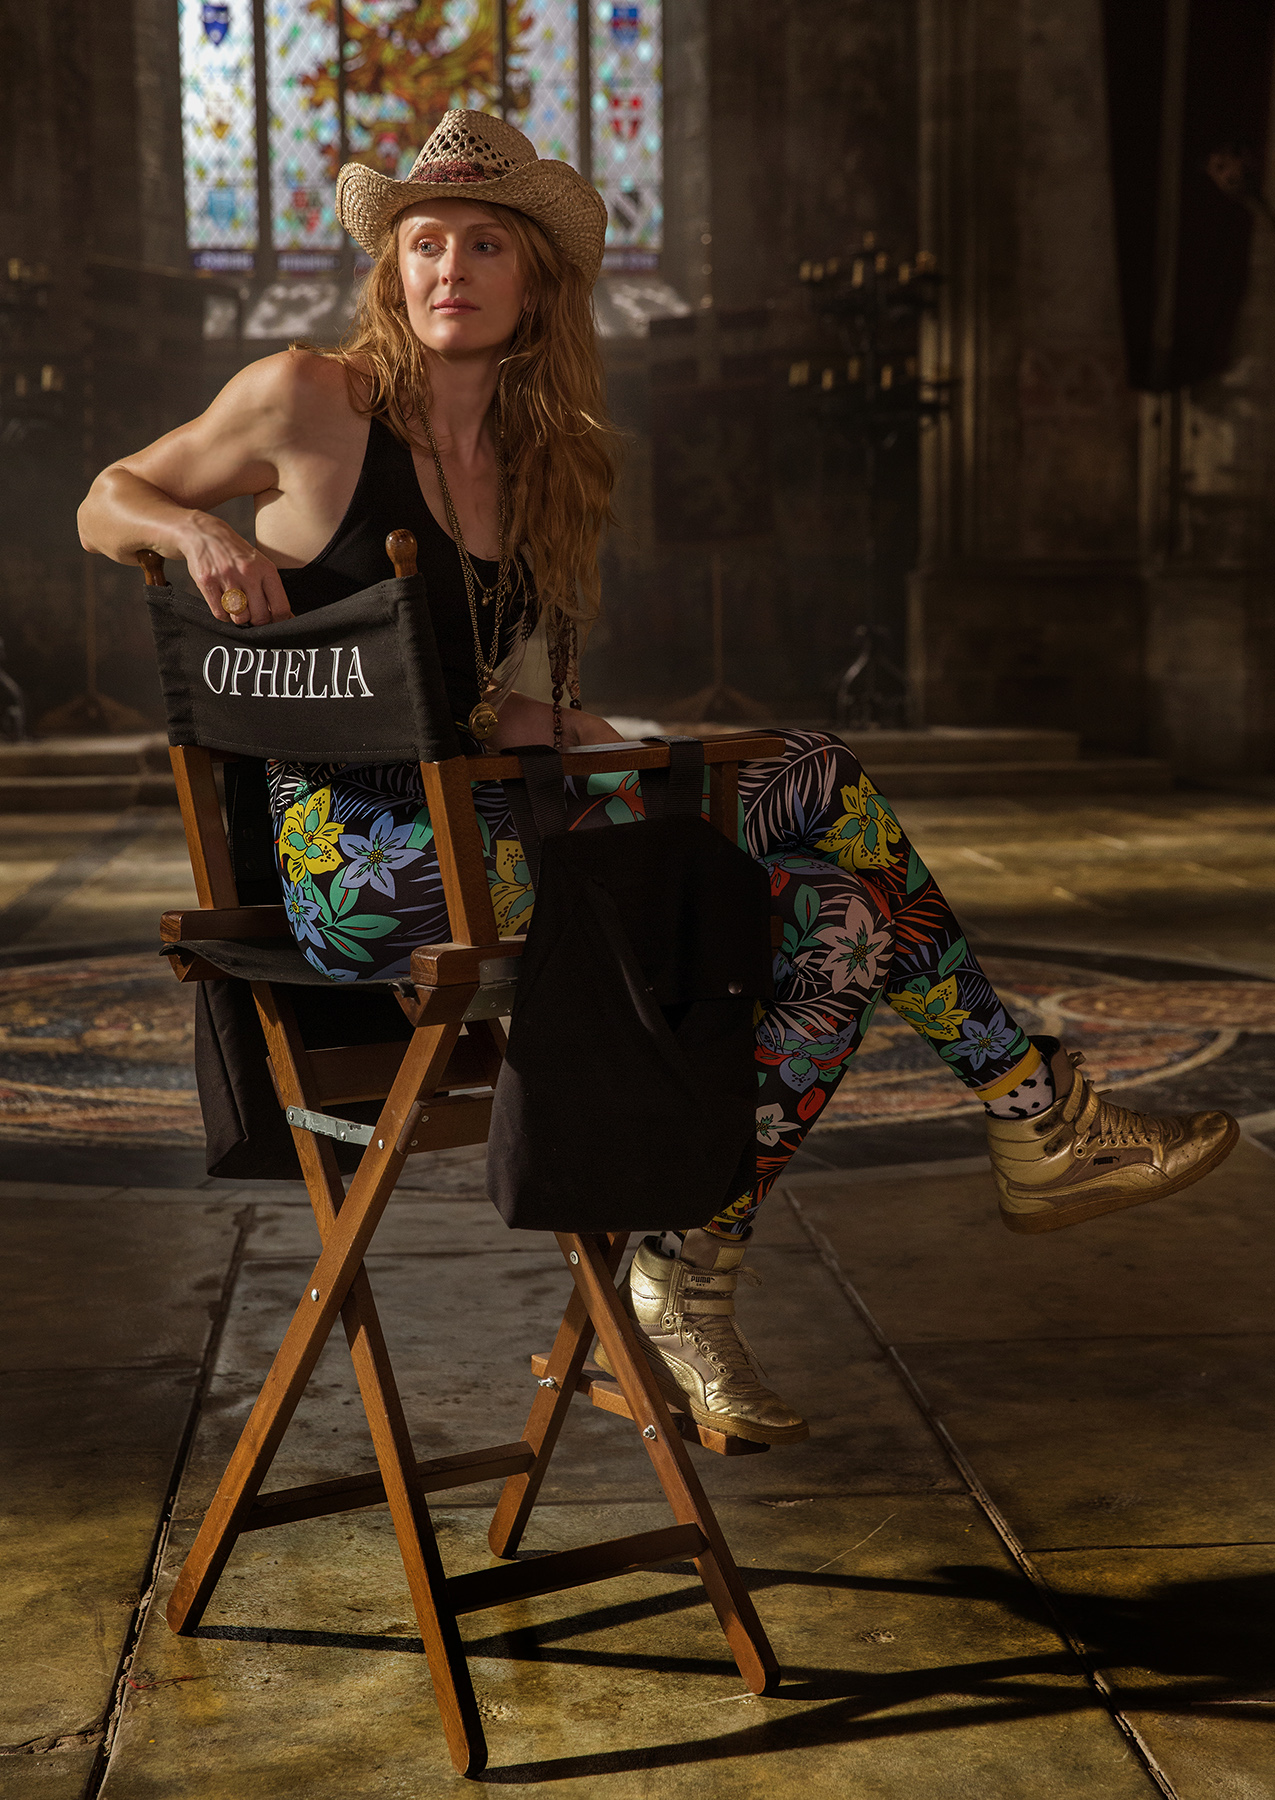 Claire McCarthy on set of Ophelia